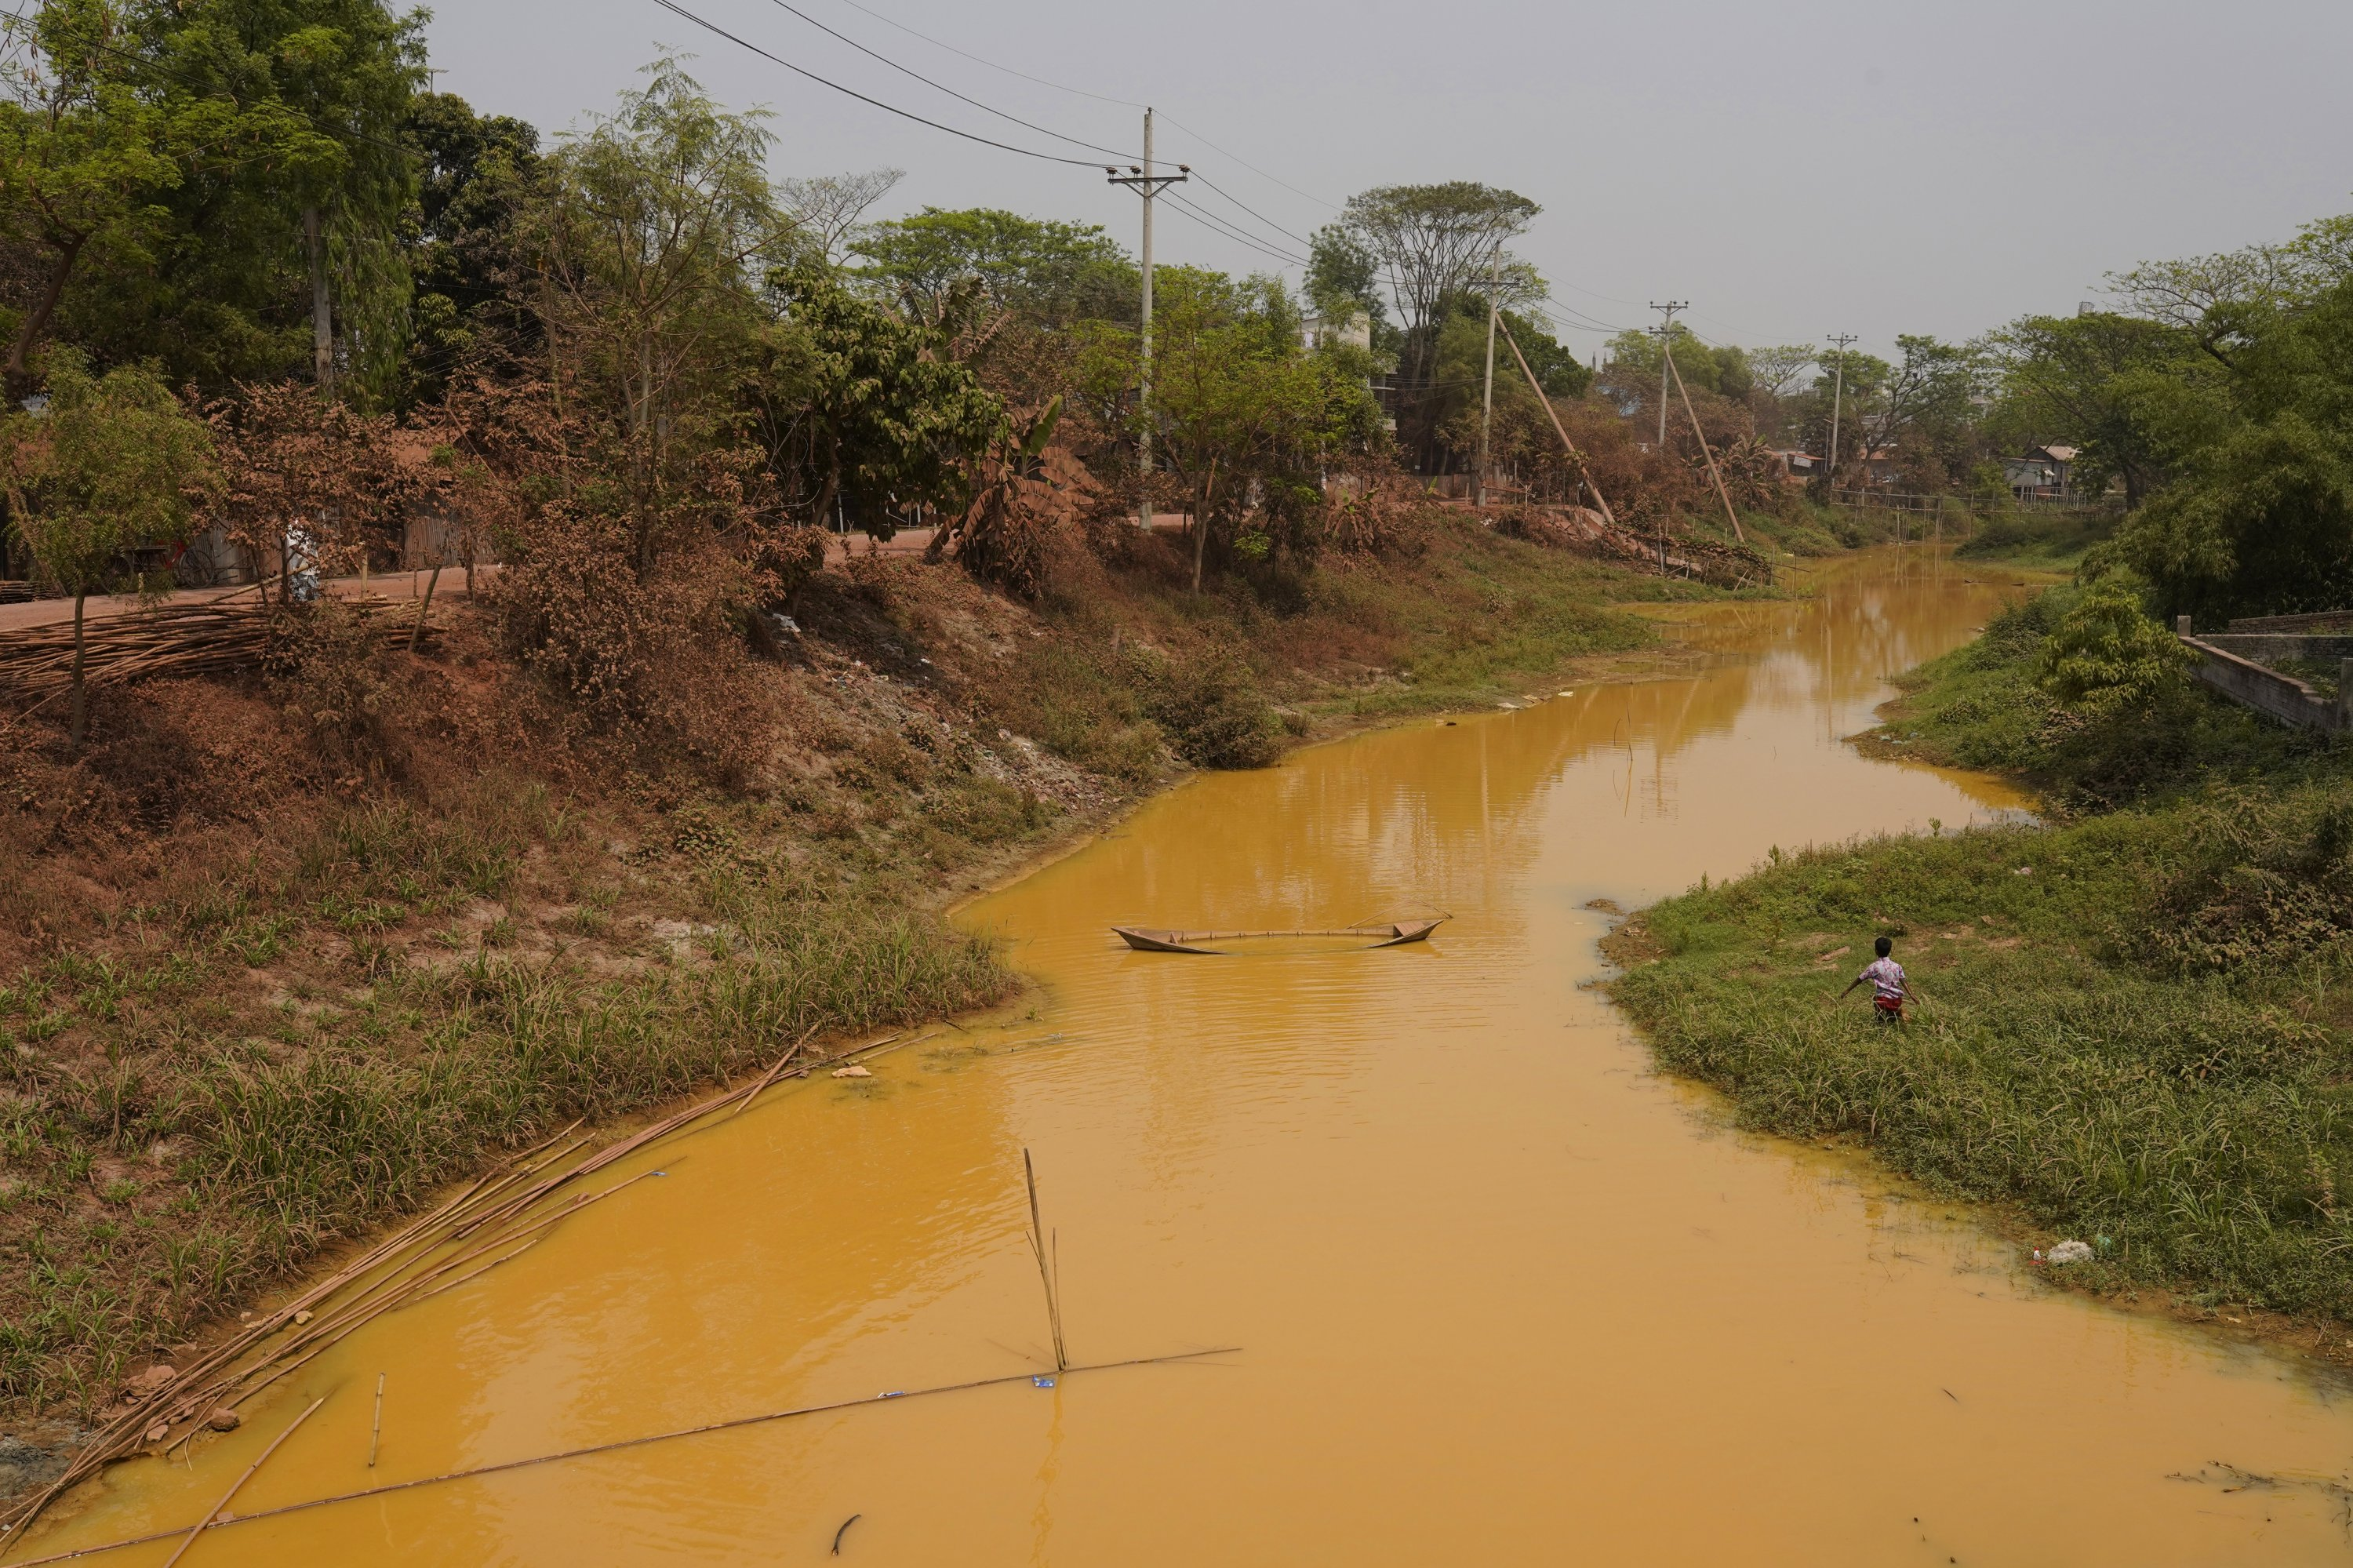 An overall view of a canal polluted by wastewater from a water treatment plant at Savar in Dhaka, Bangladesh, March 21, 2021. (Photo by Getty Images)